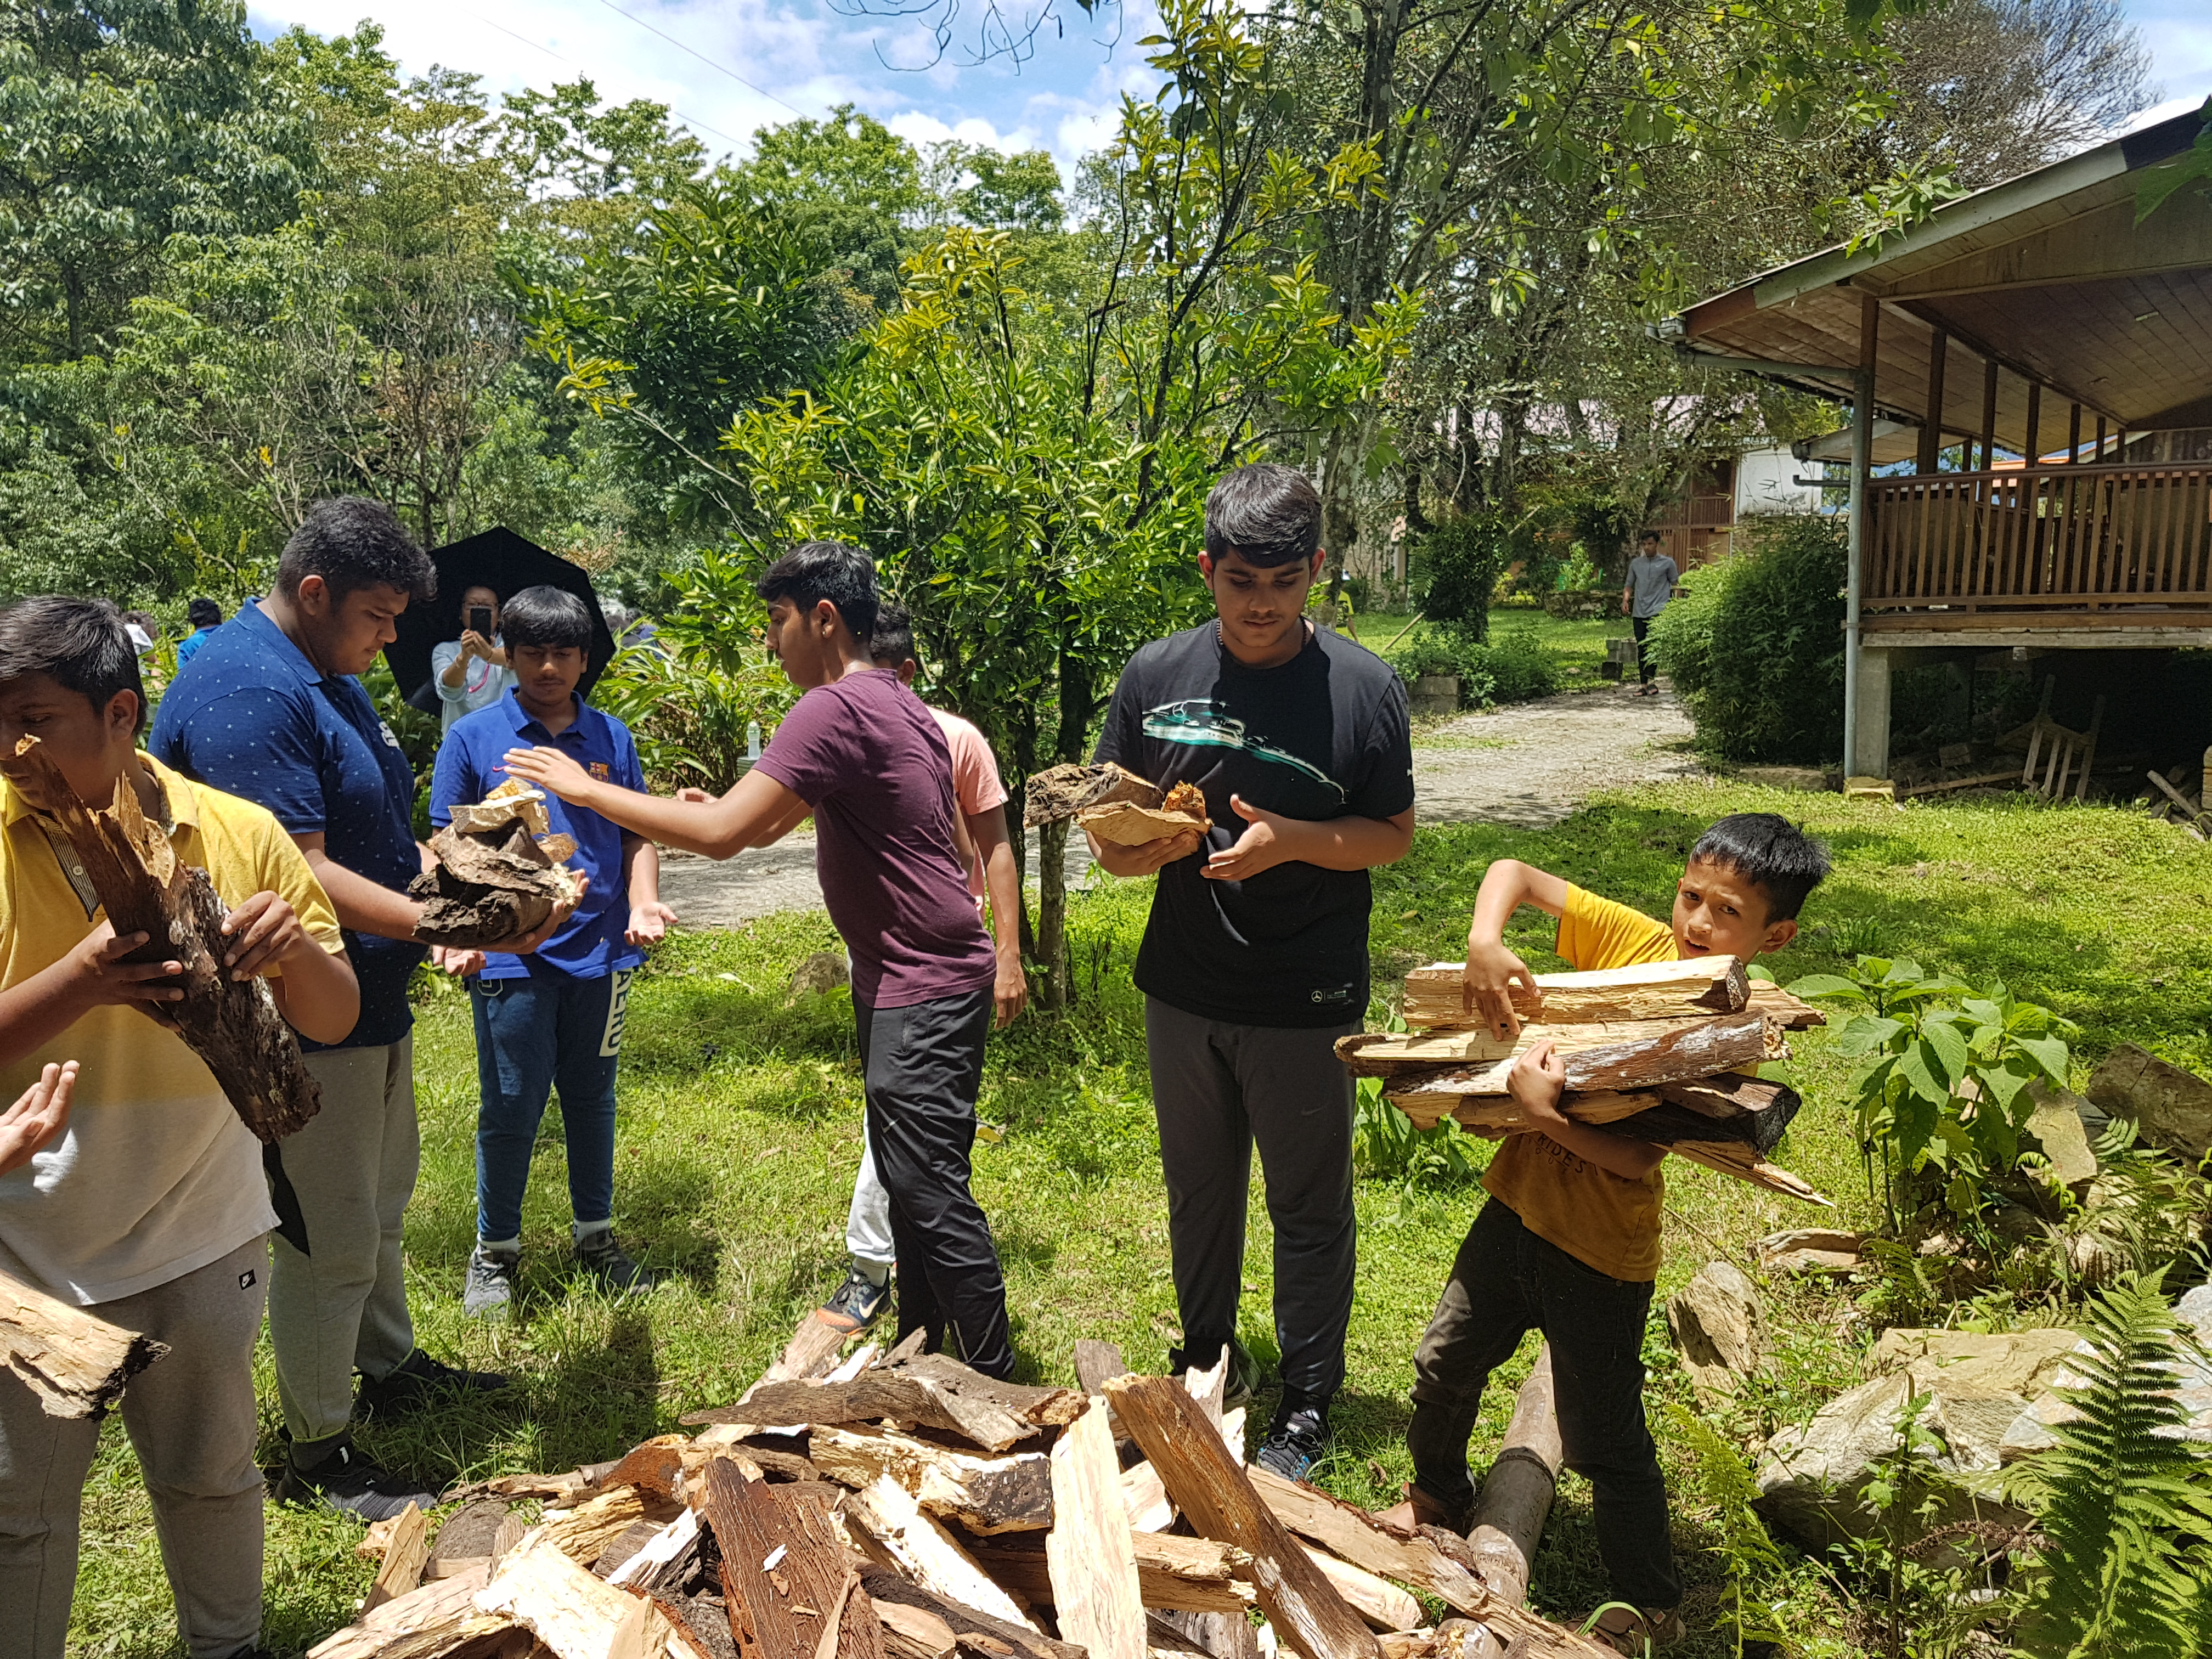 Students on a School trip lend a helping hand to farmers in Sikkim